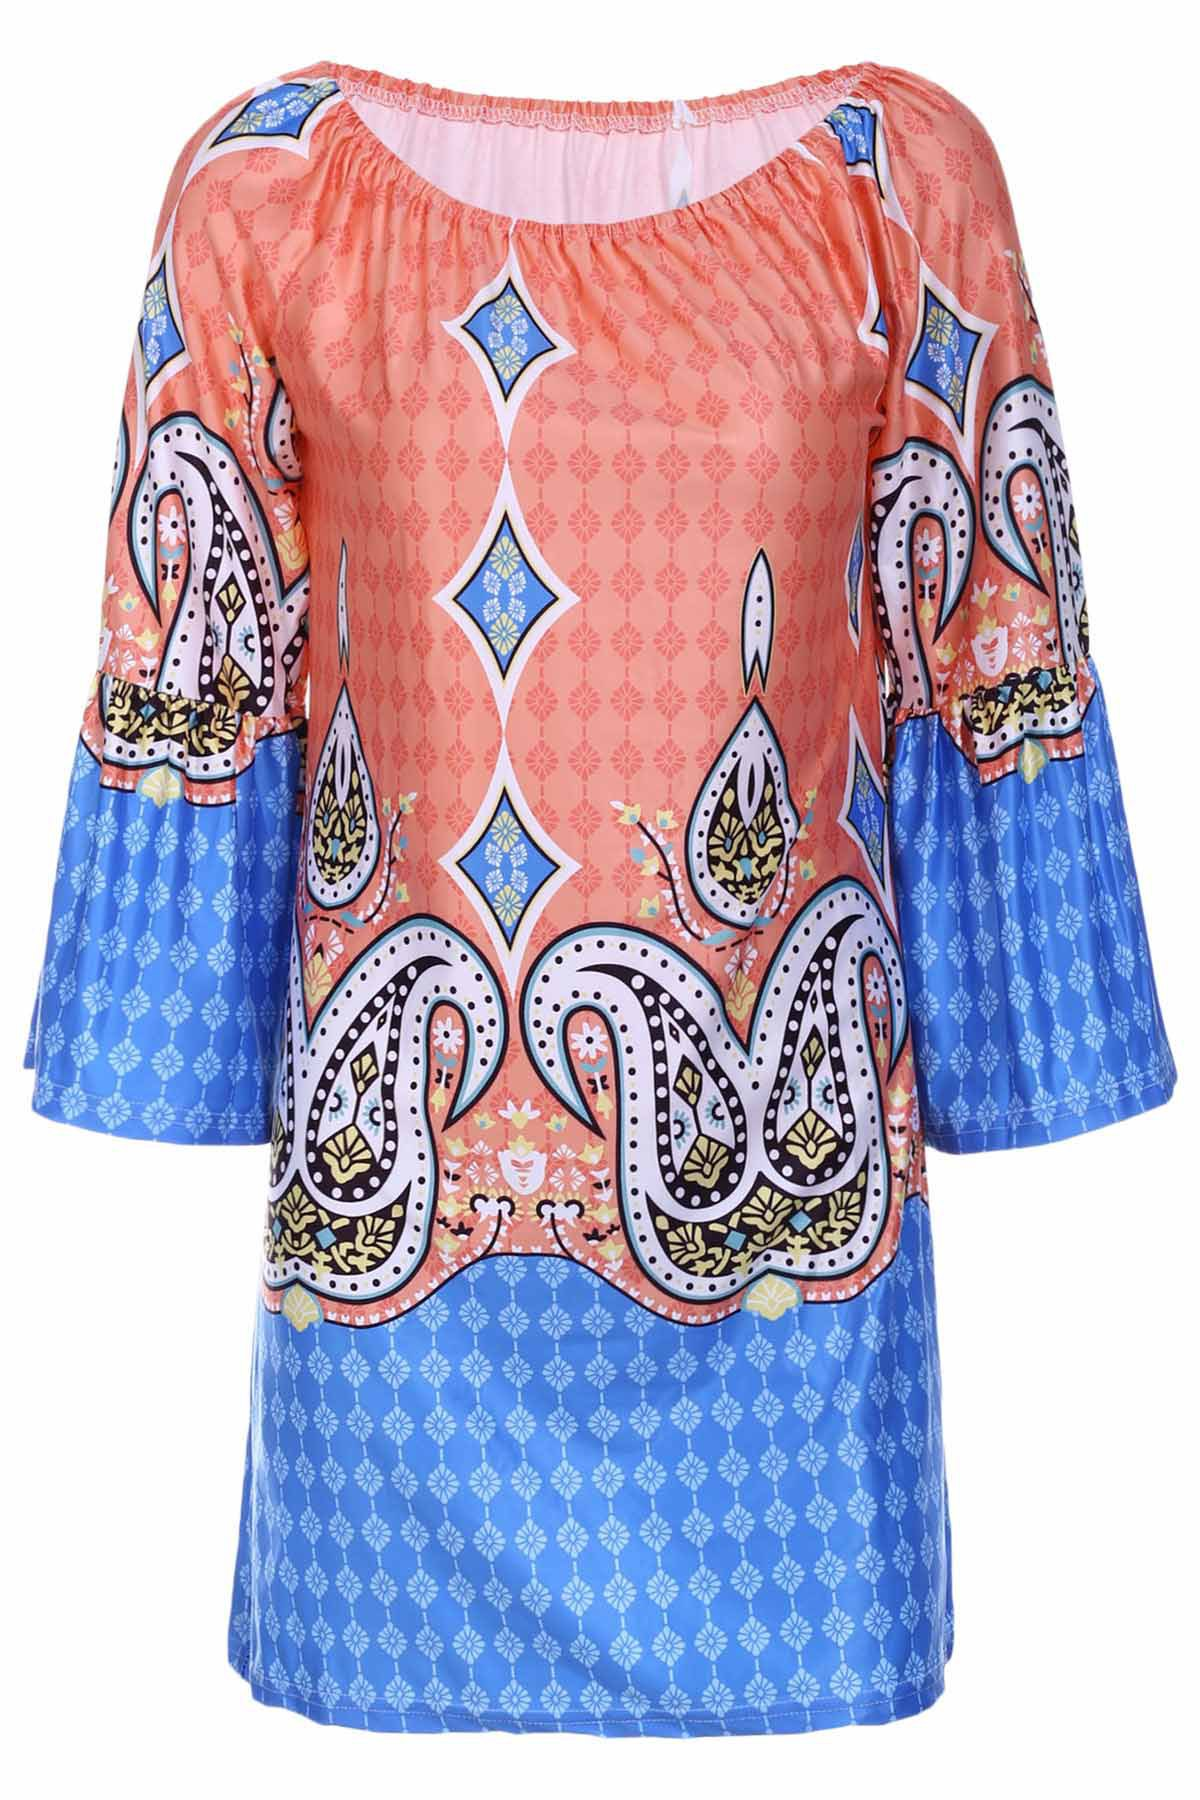 Bohemian Style Women's Scoop Neck Flare Sleeve Printed Dress - ORANGE XL